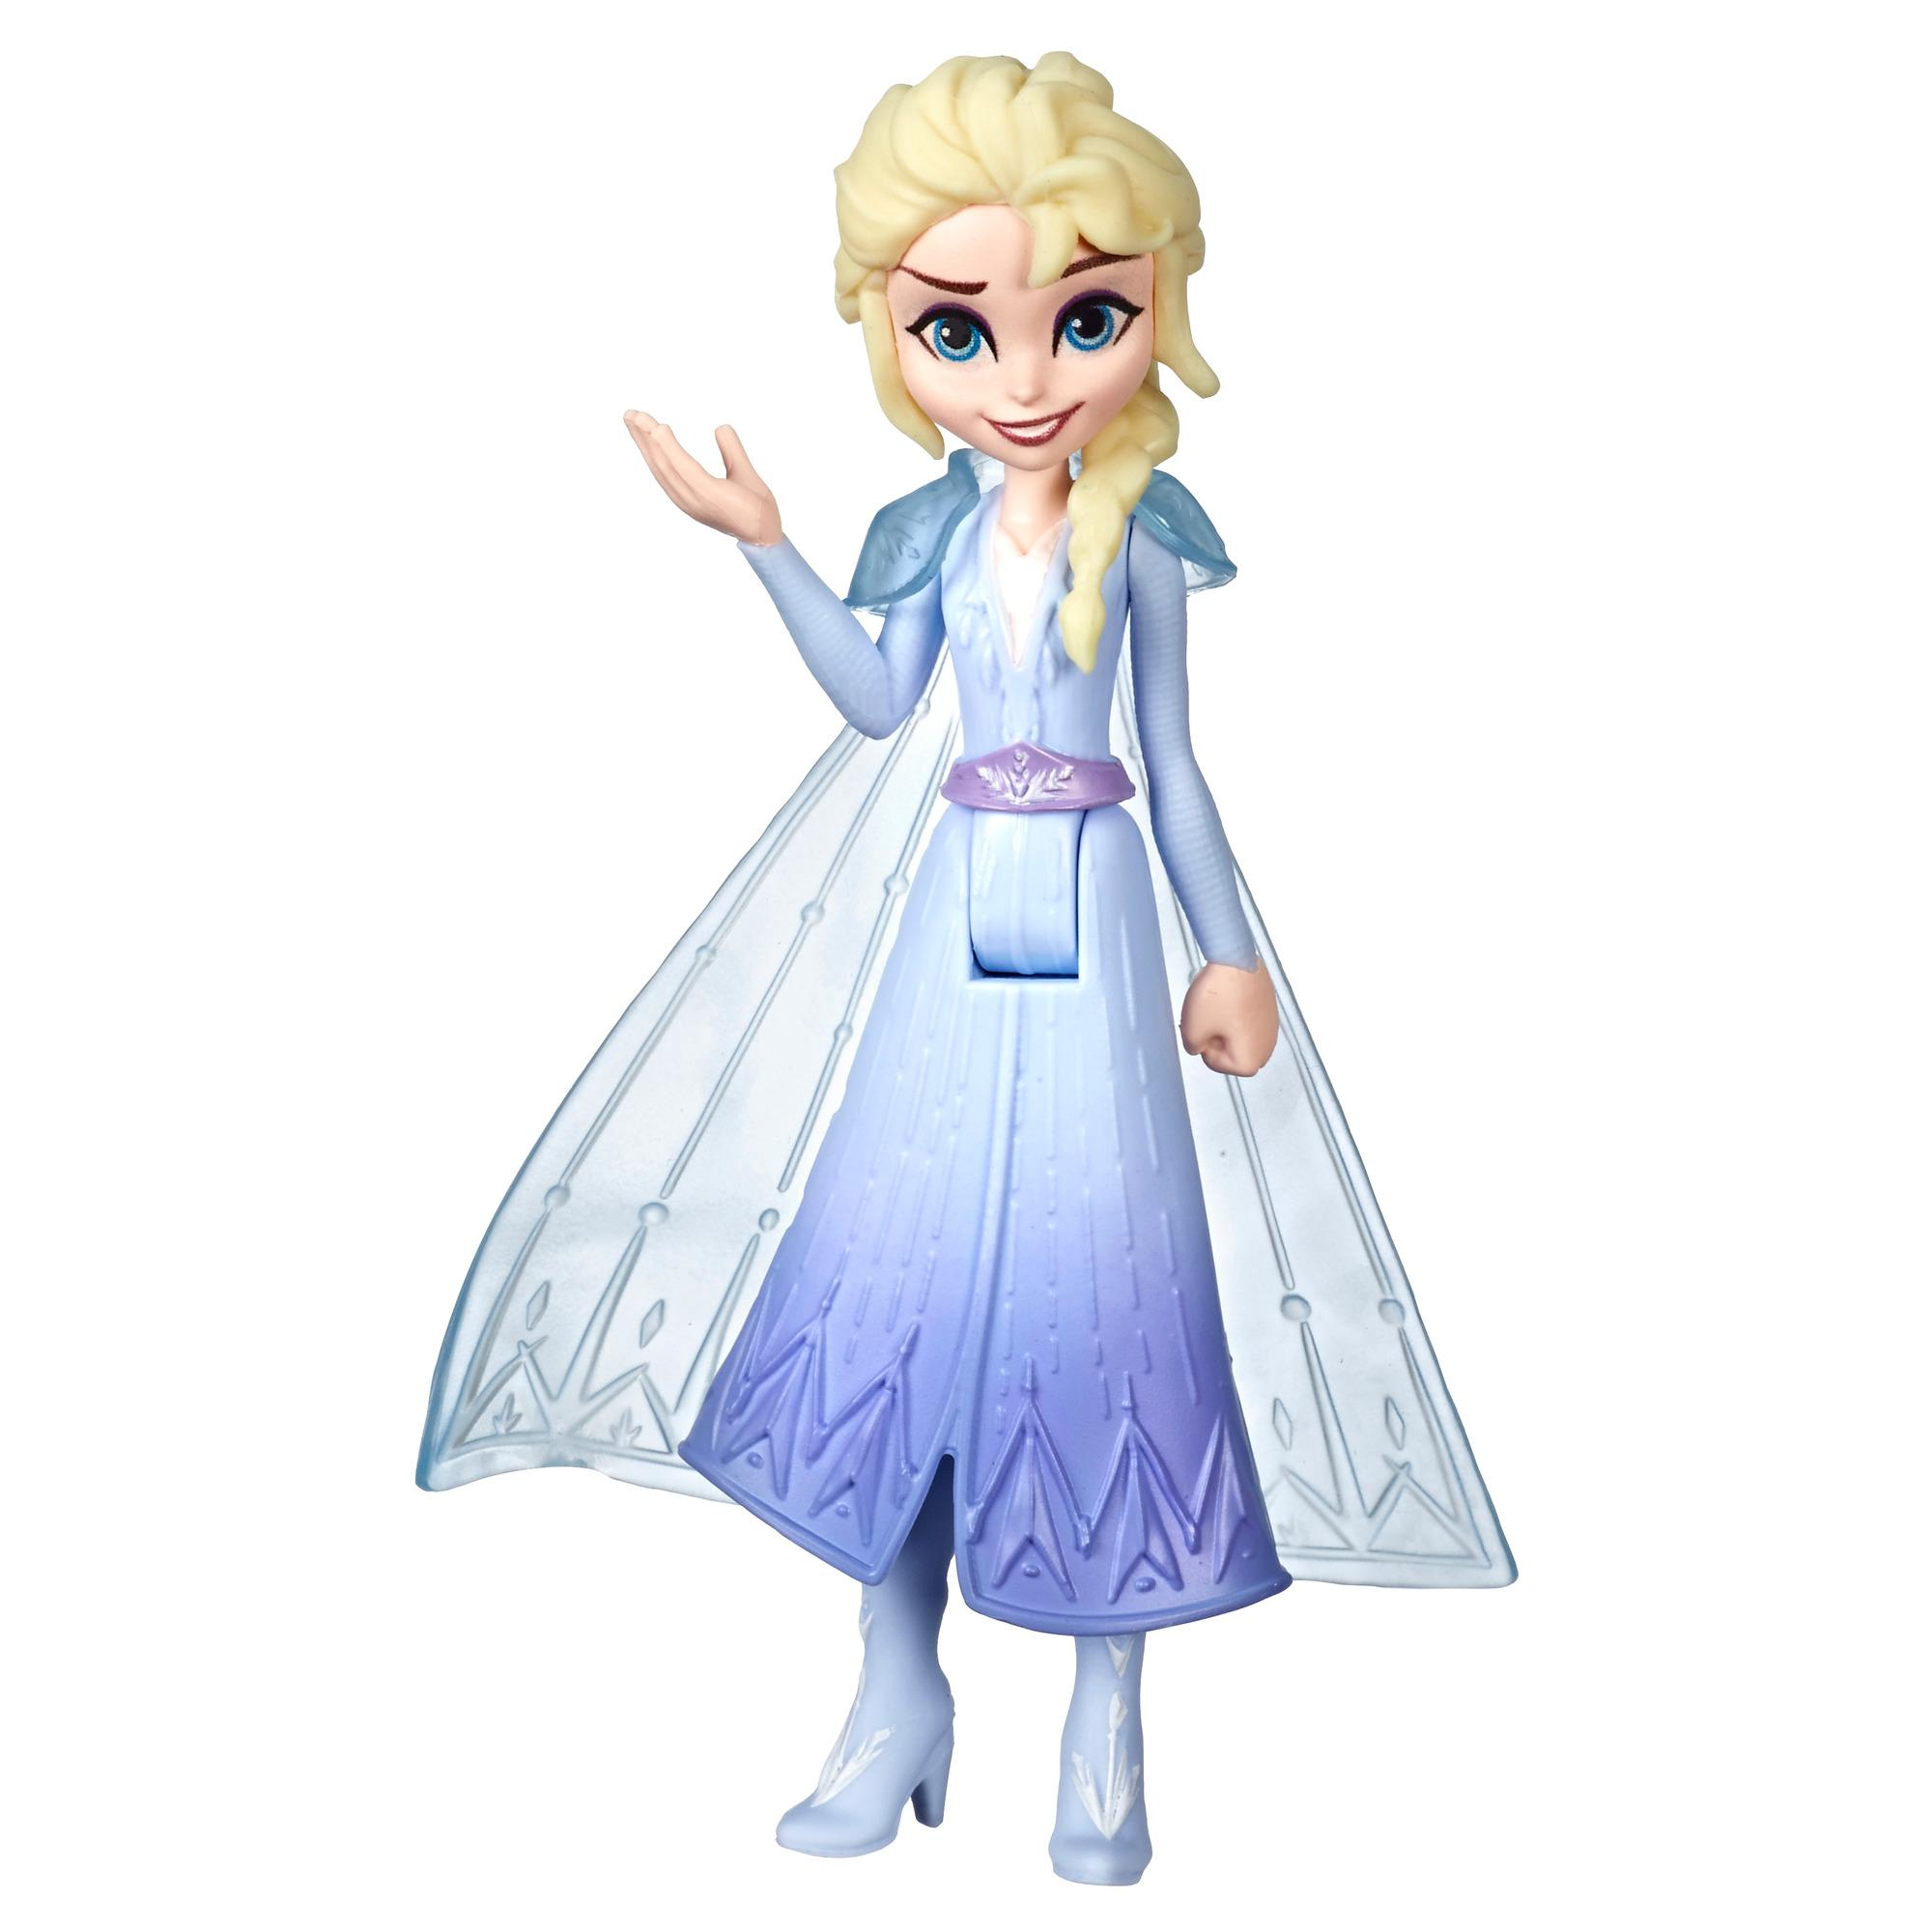 Disney Frozen Elsa Small Doll With Removable Cape Inspired by Frozen 2